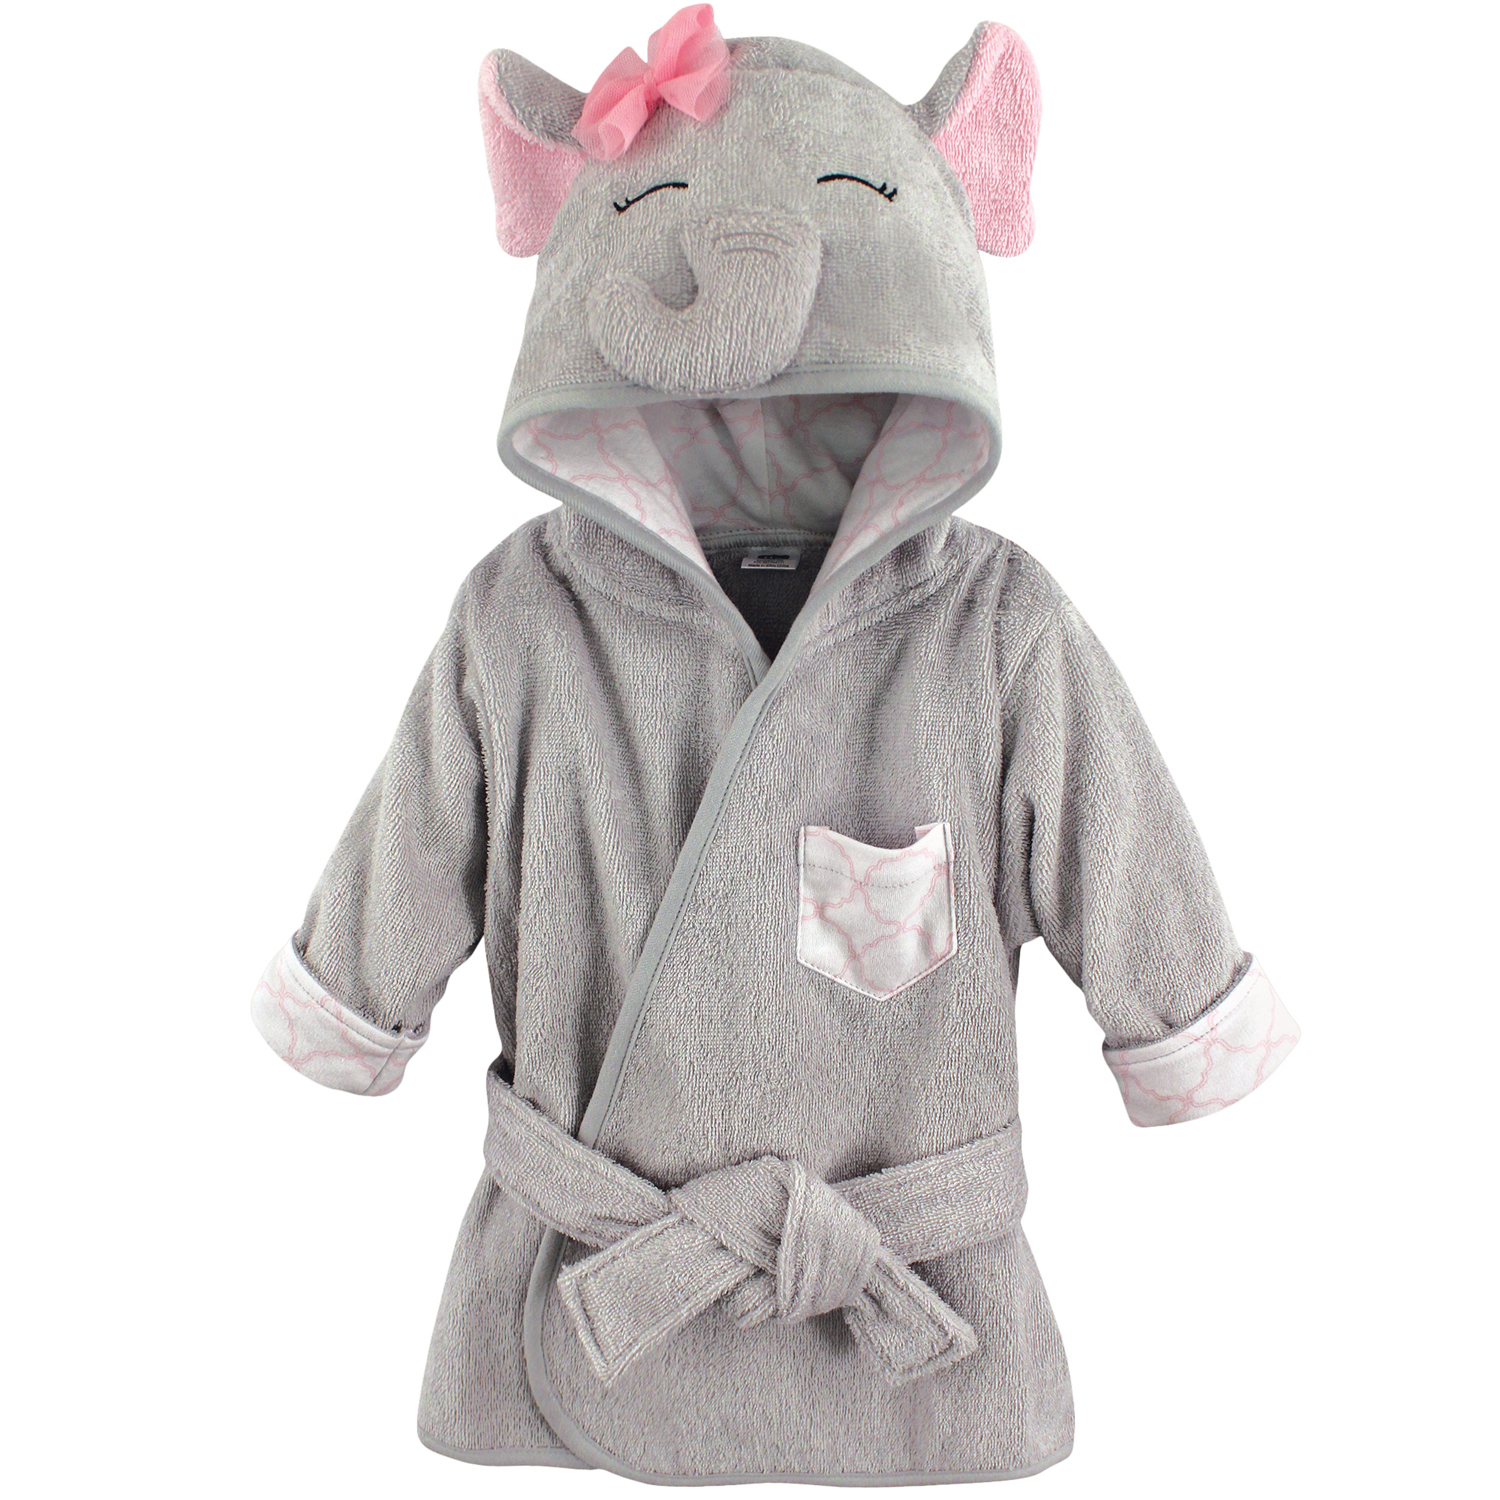 Woven Terry Animal Bathrobe - Pretty Elephant